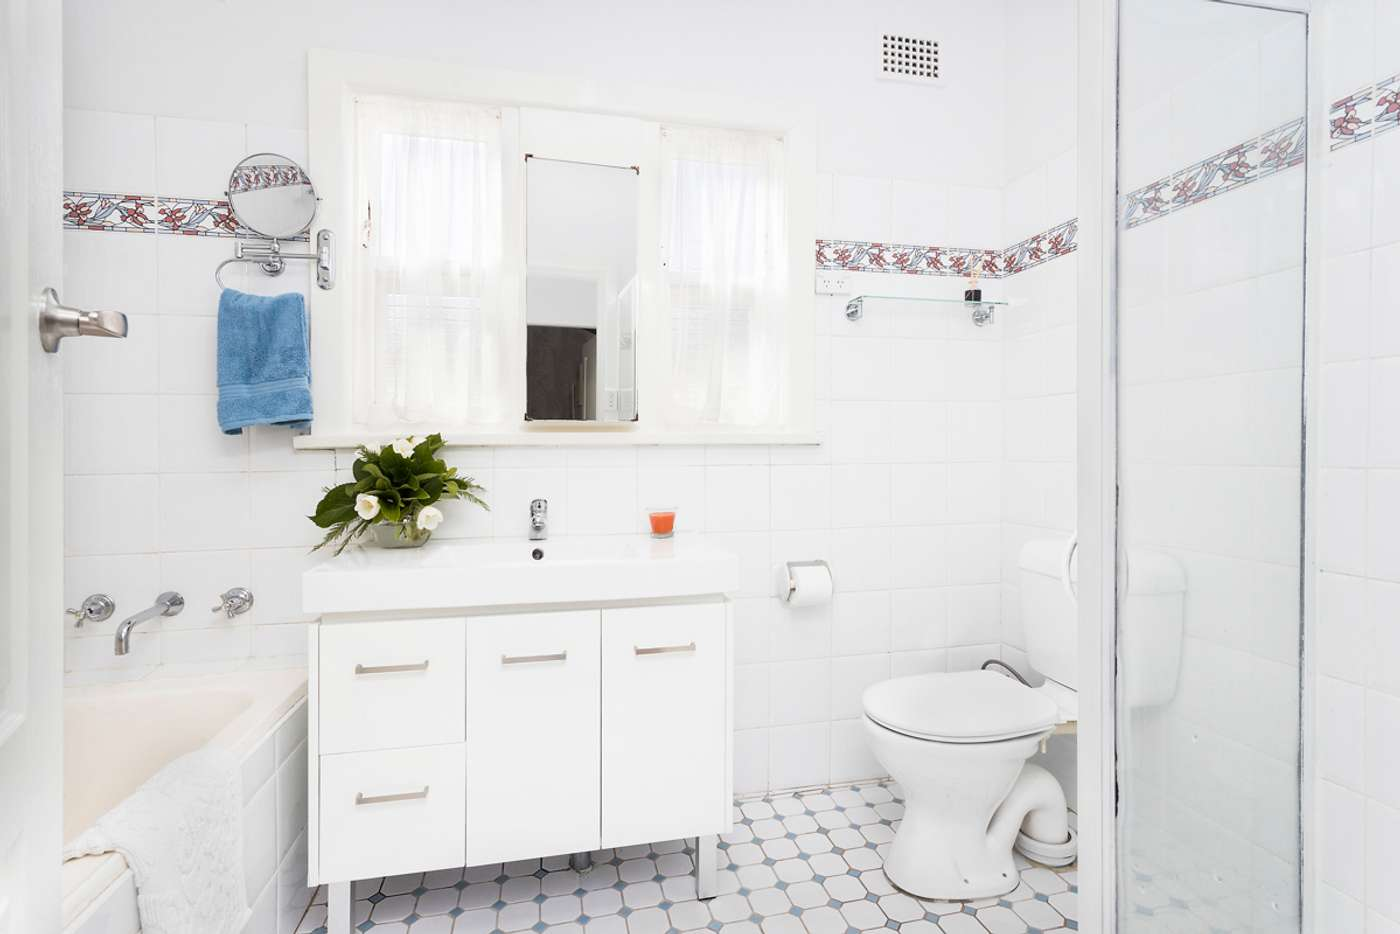 Sixth view of Homely house listing, 419 President Avenue, Kirrawee NSW 2232